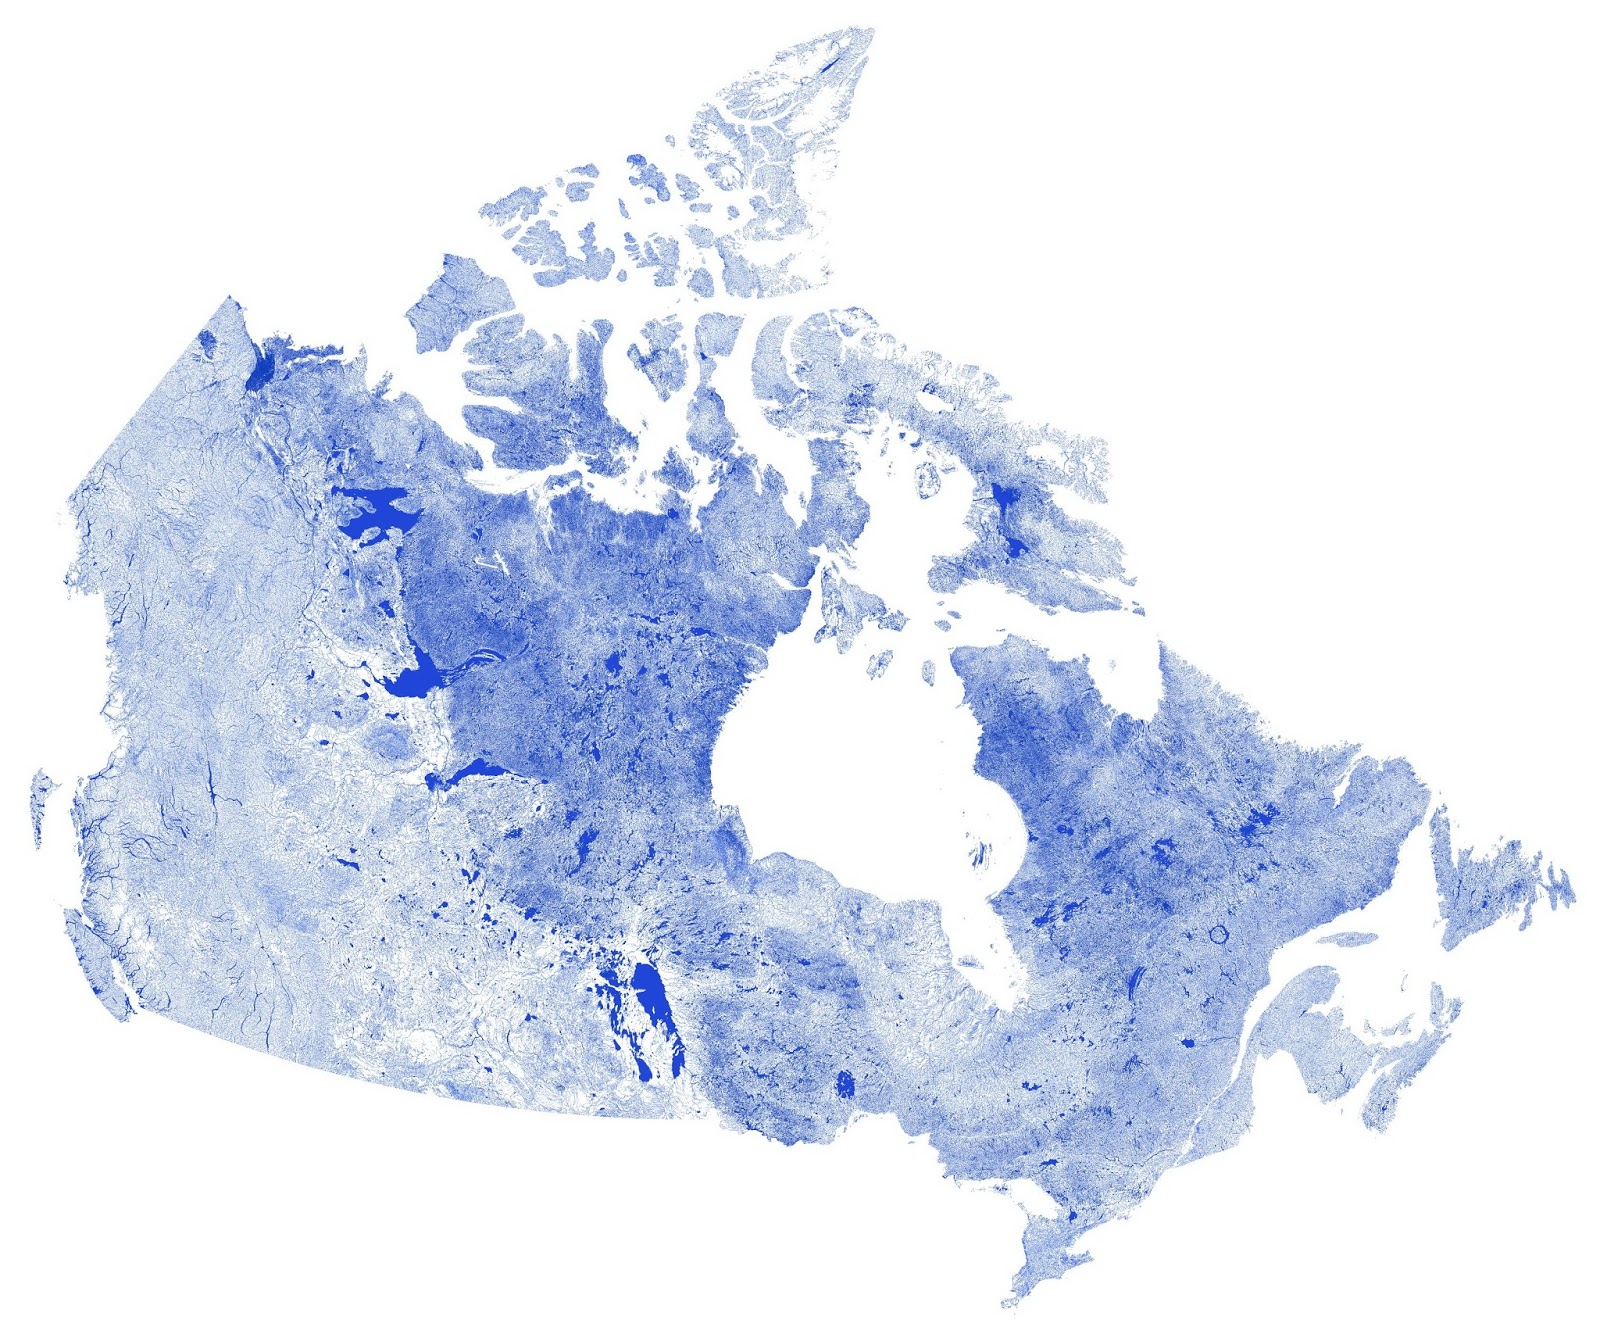 Canada mapped only by rivers, streams & lakes